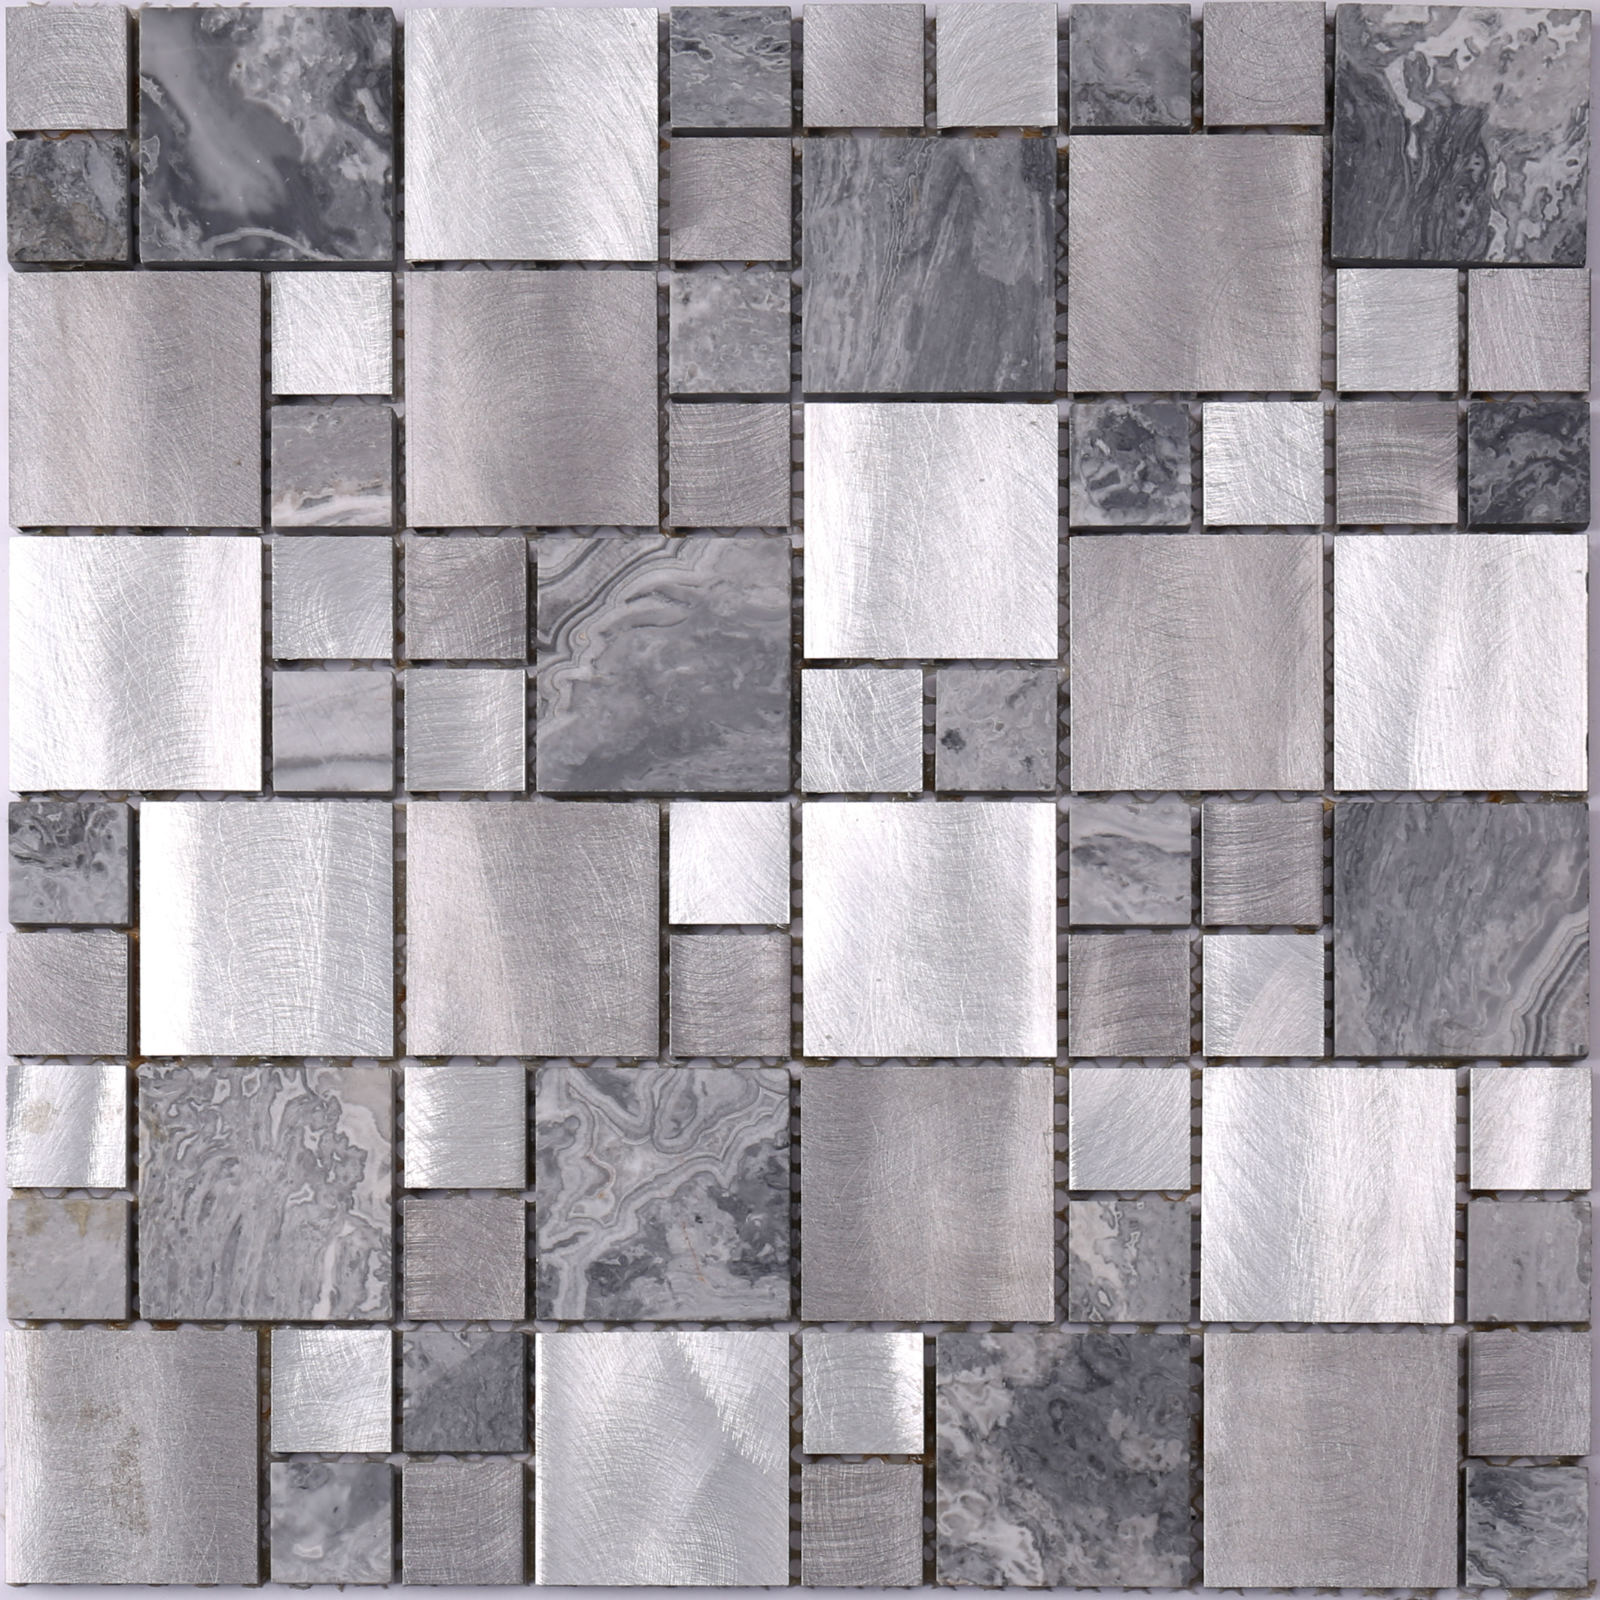 Heng Xing-Oem Odm Metal Tile Backsplash, Metal Ceiling Tiles | Heng Xing